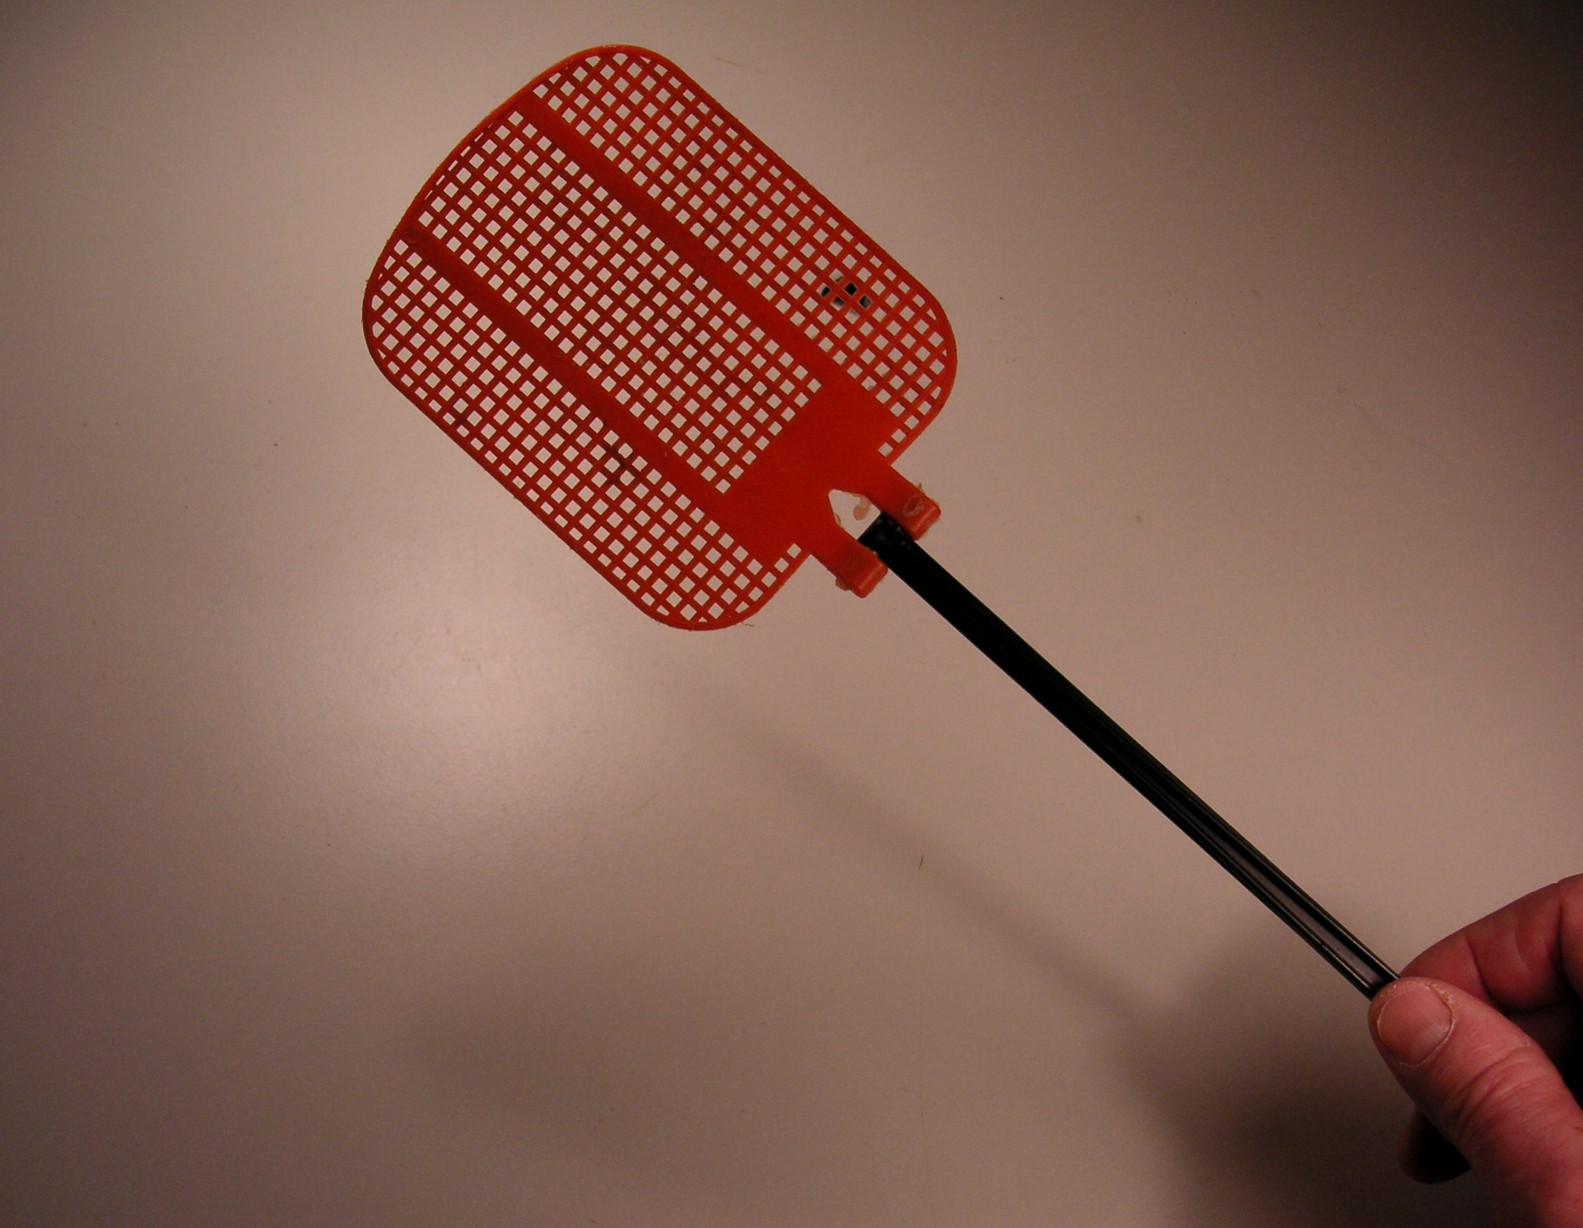 person holding a red fly swatter against a fly